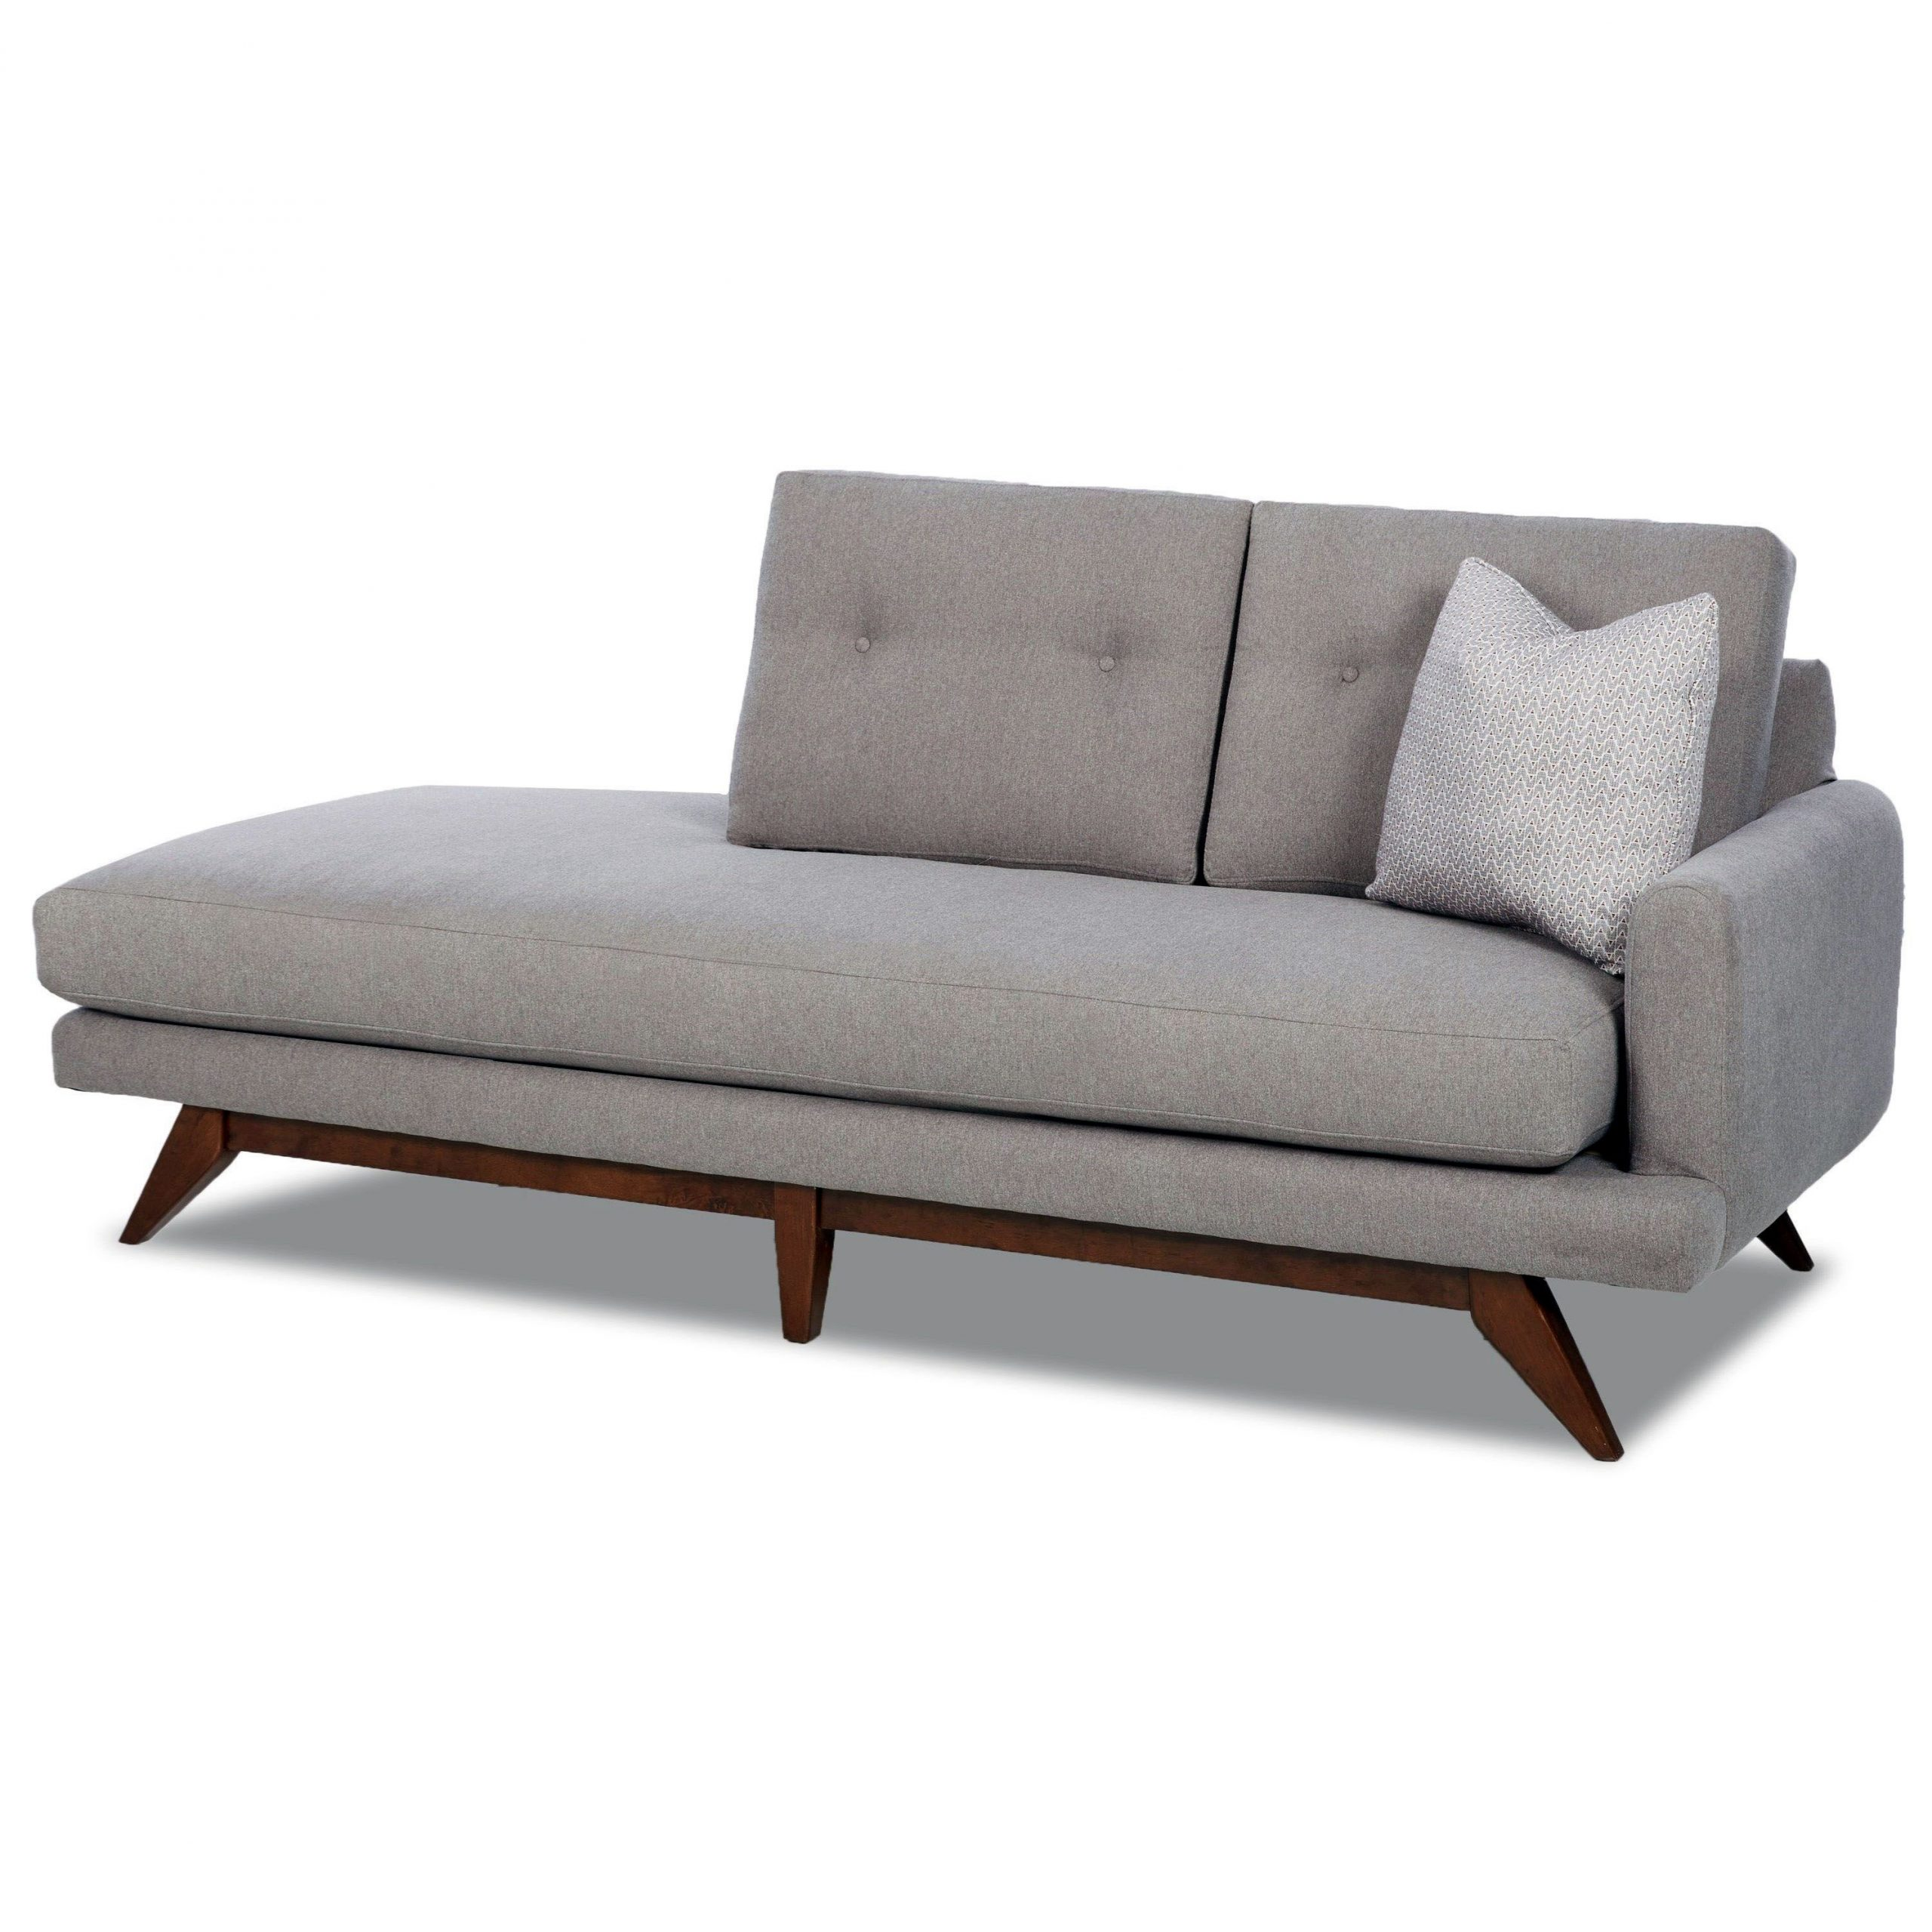 Alani Mid Century Modern Sectional Sofas With Chaise With Regard To 2017 Ways To Arrange Your Porch Furniture (View 25 of 25)